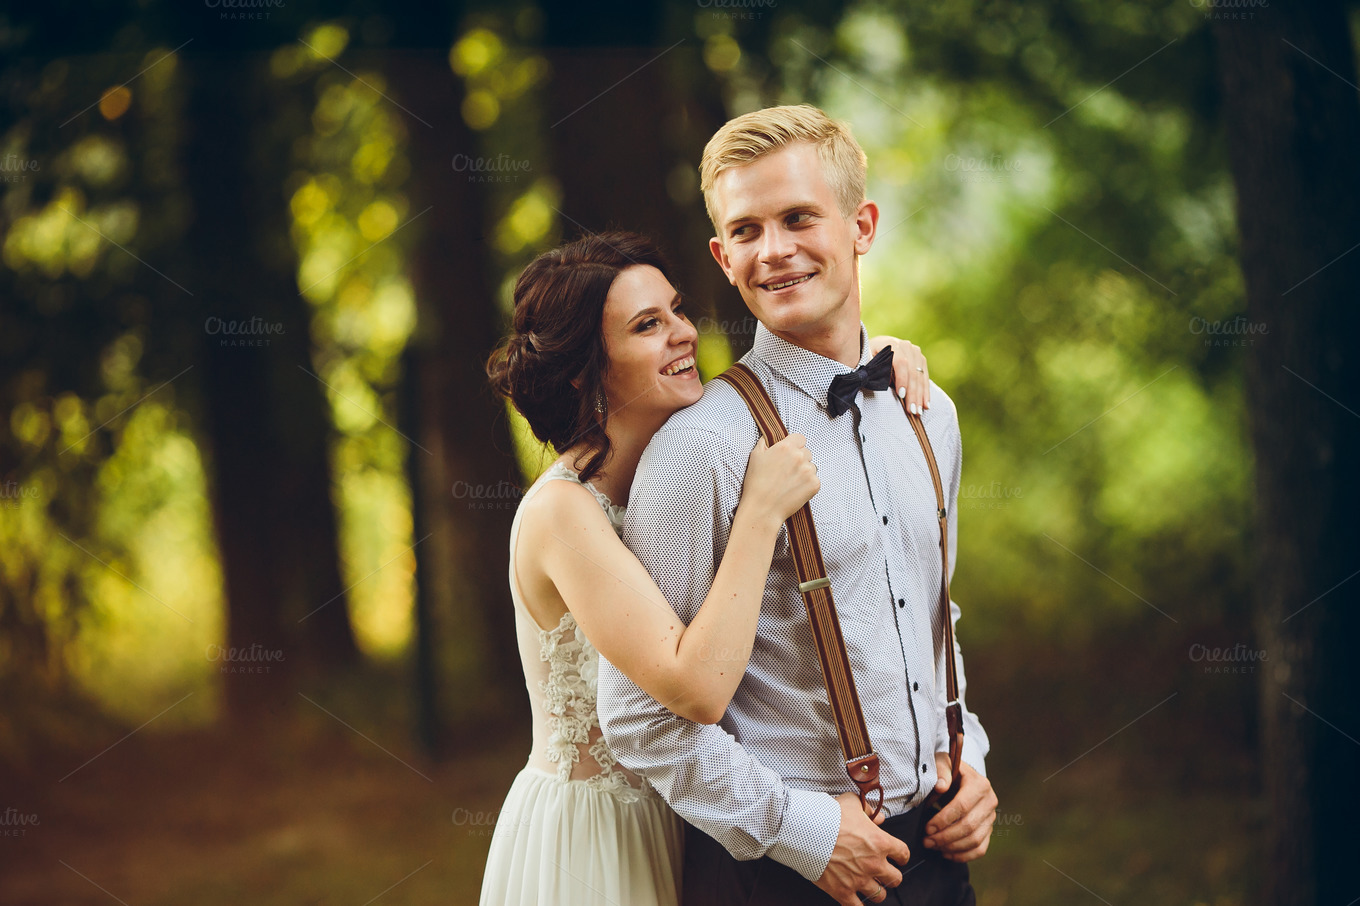 Beautiful-wedding-couple-posing